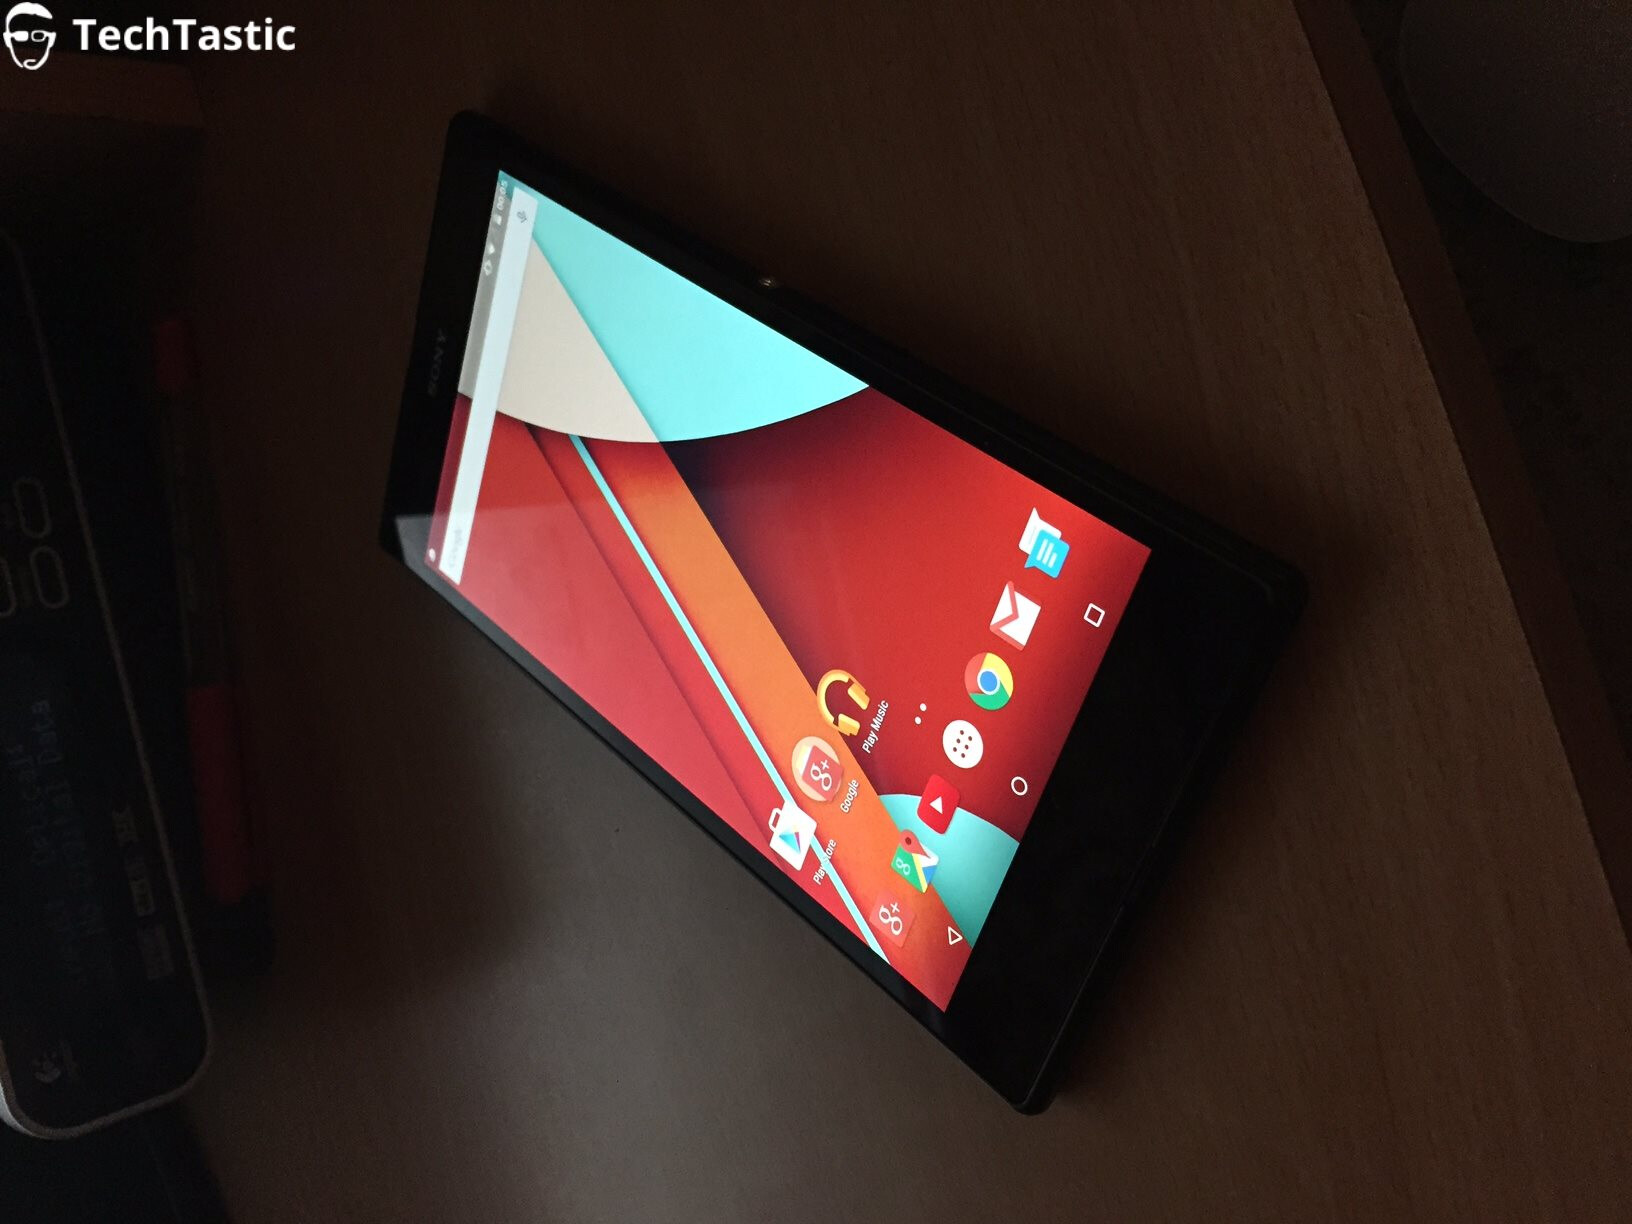 Sony Xperia Z Ultra Gpe On Android Lollipop Tip 1 How To Edit Videos